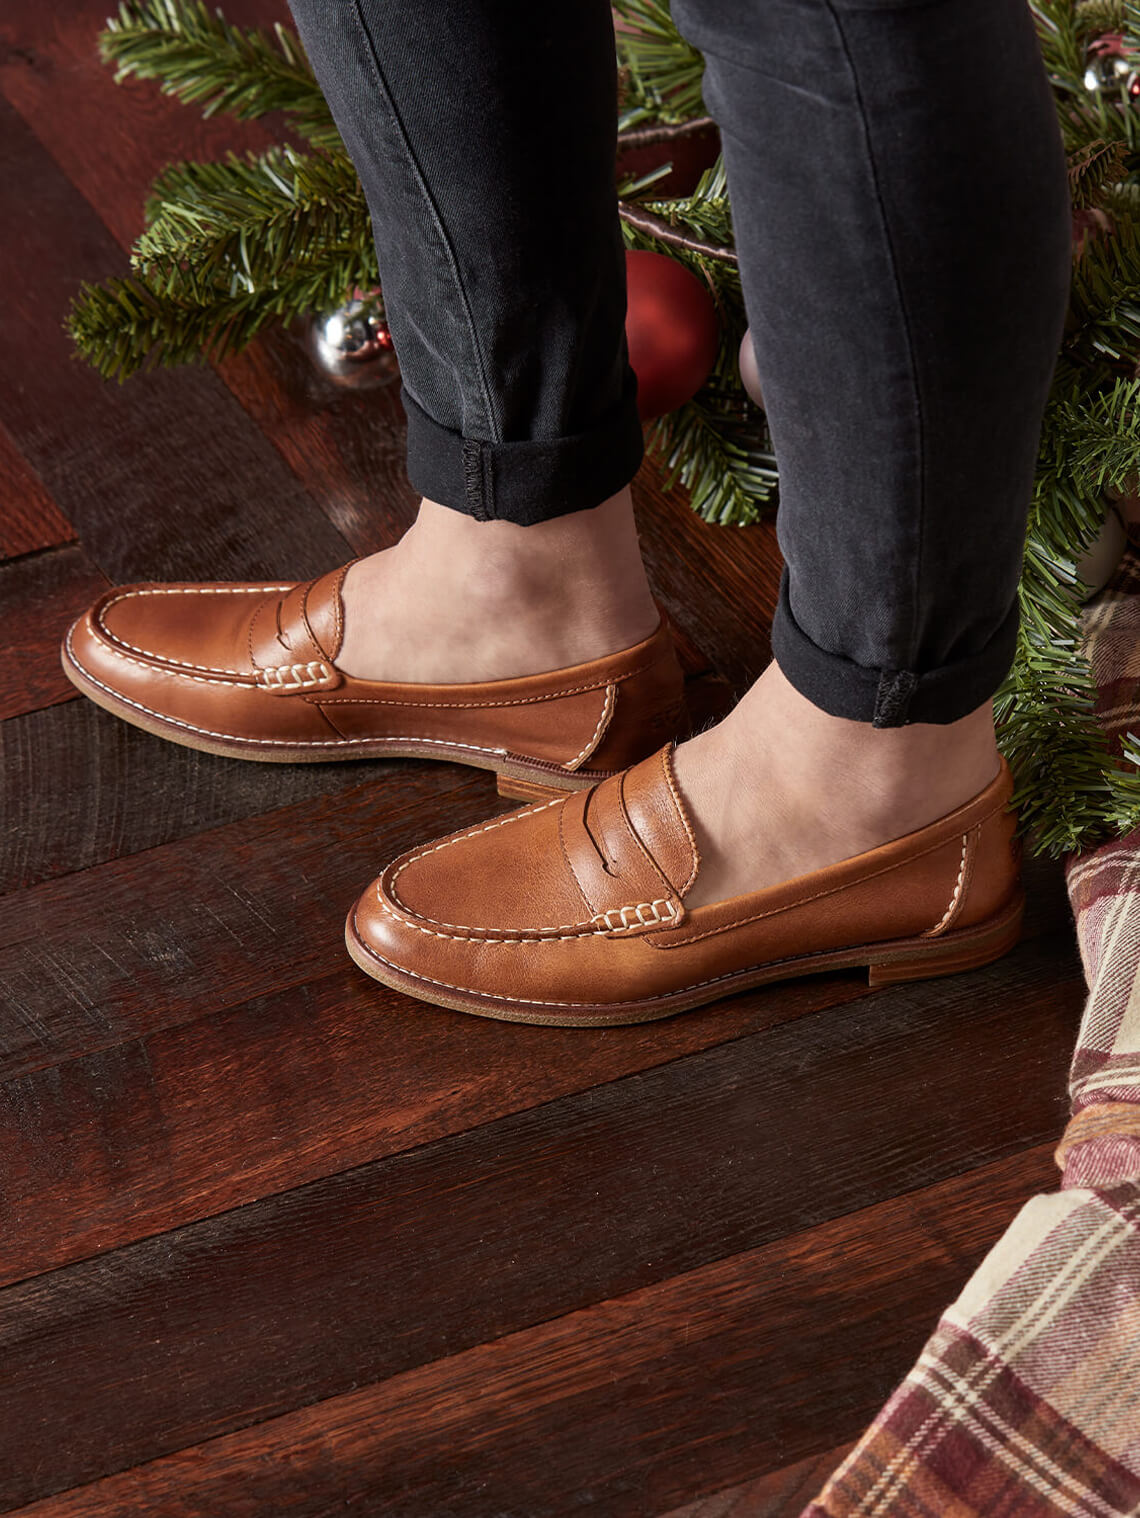 A pair of feet stand next to a christmas tree wearing Seaports without socks #chillyankles.